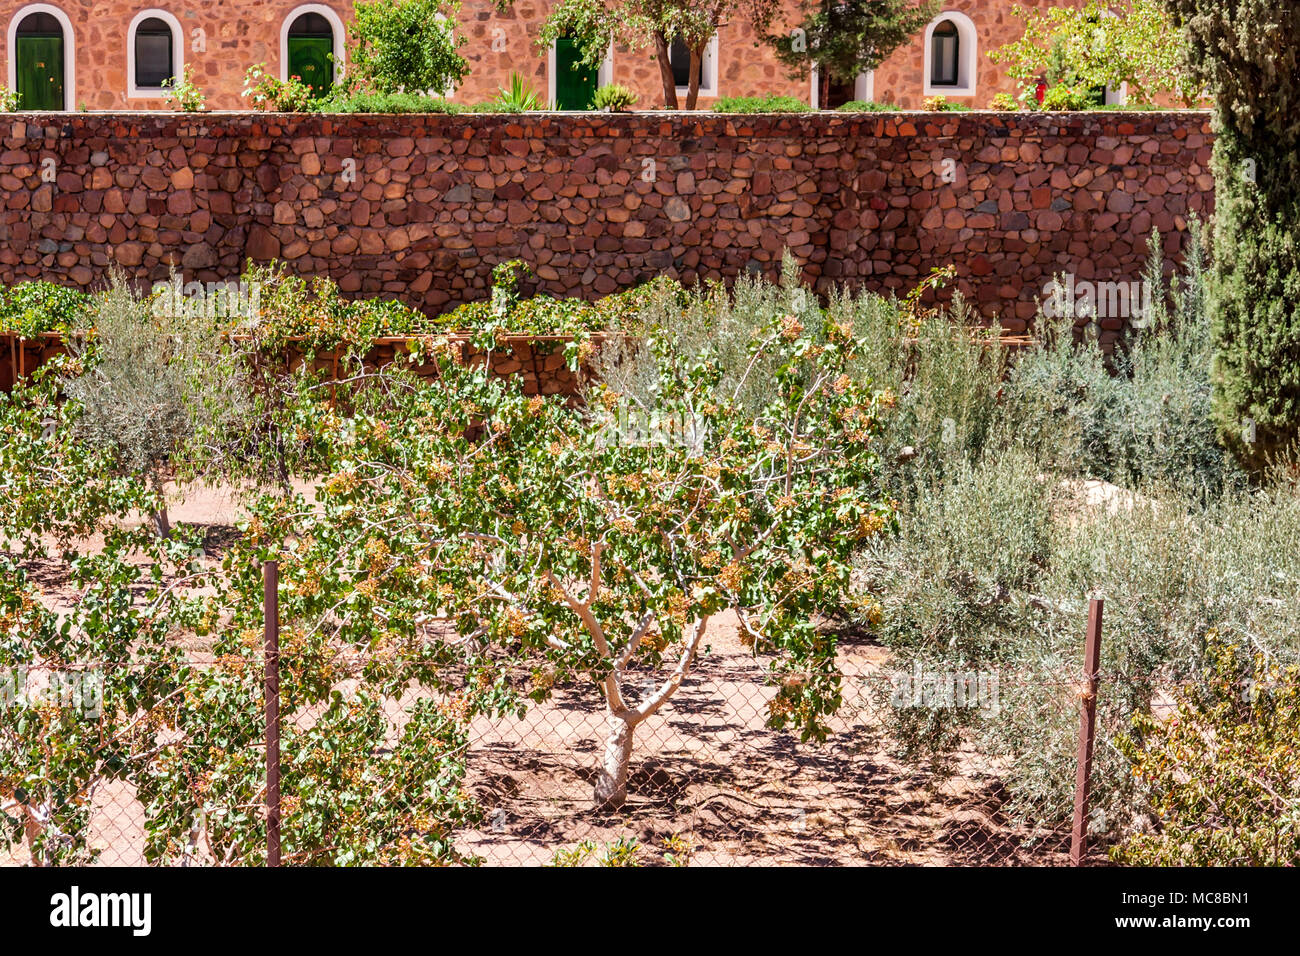 View of olive trees growing in the garden of Saint Catherine's Monastery in South Sinai, Egypt - Stock Image